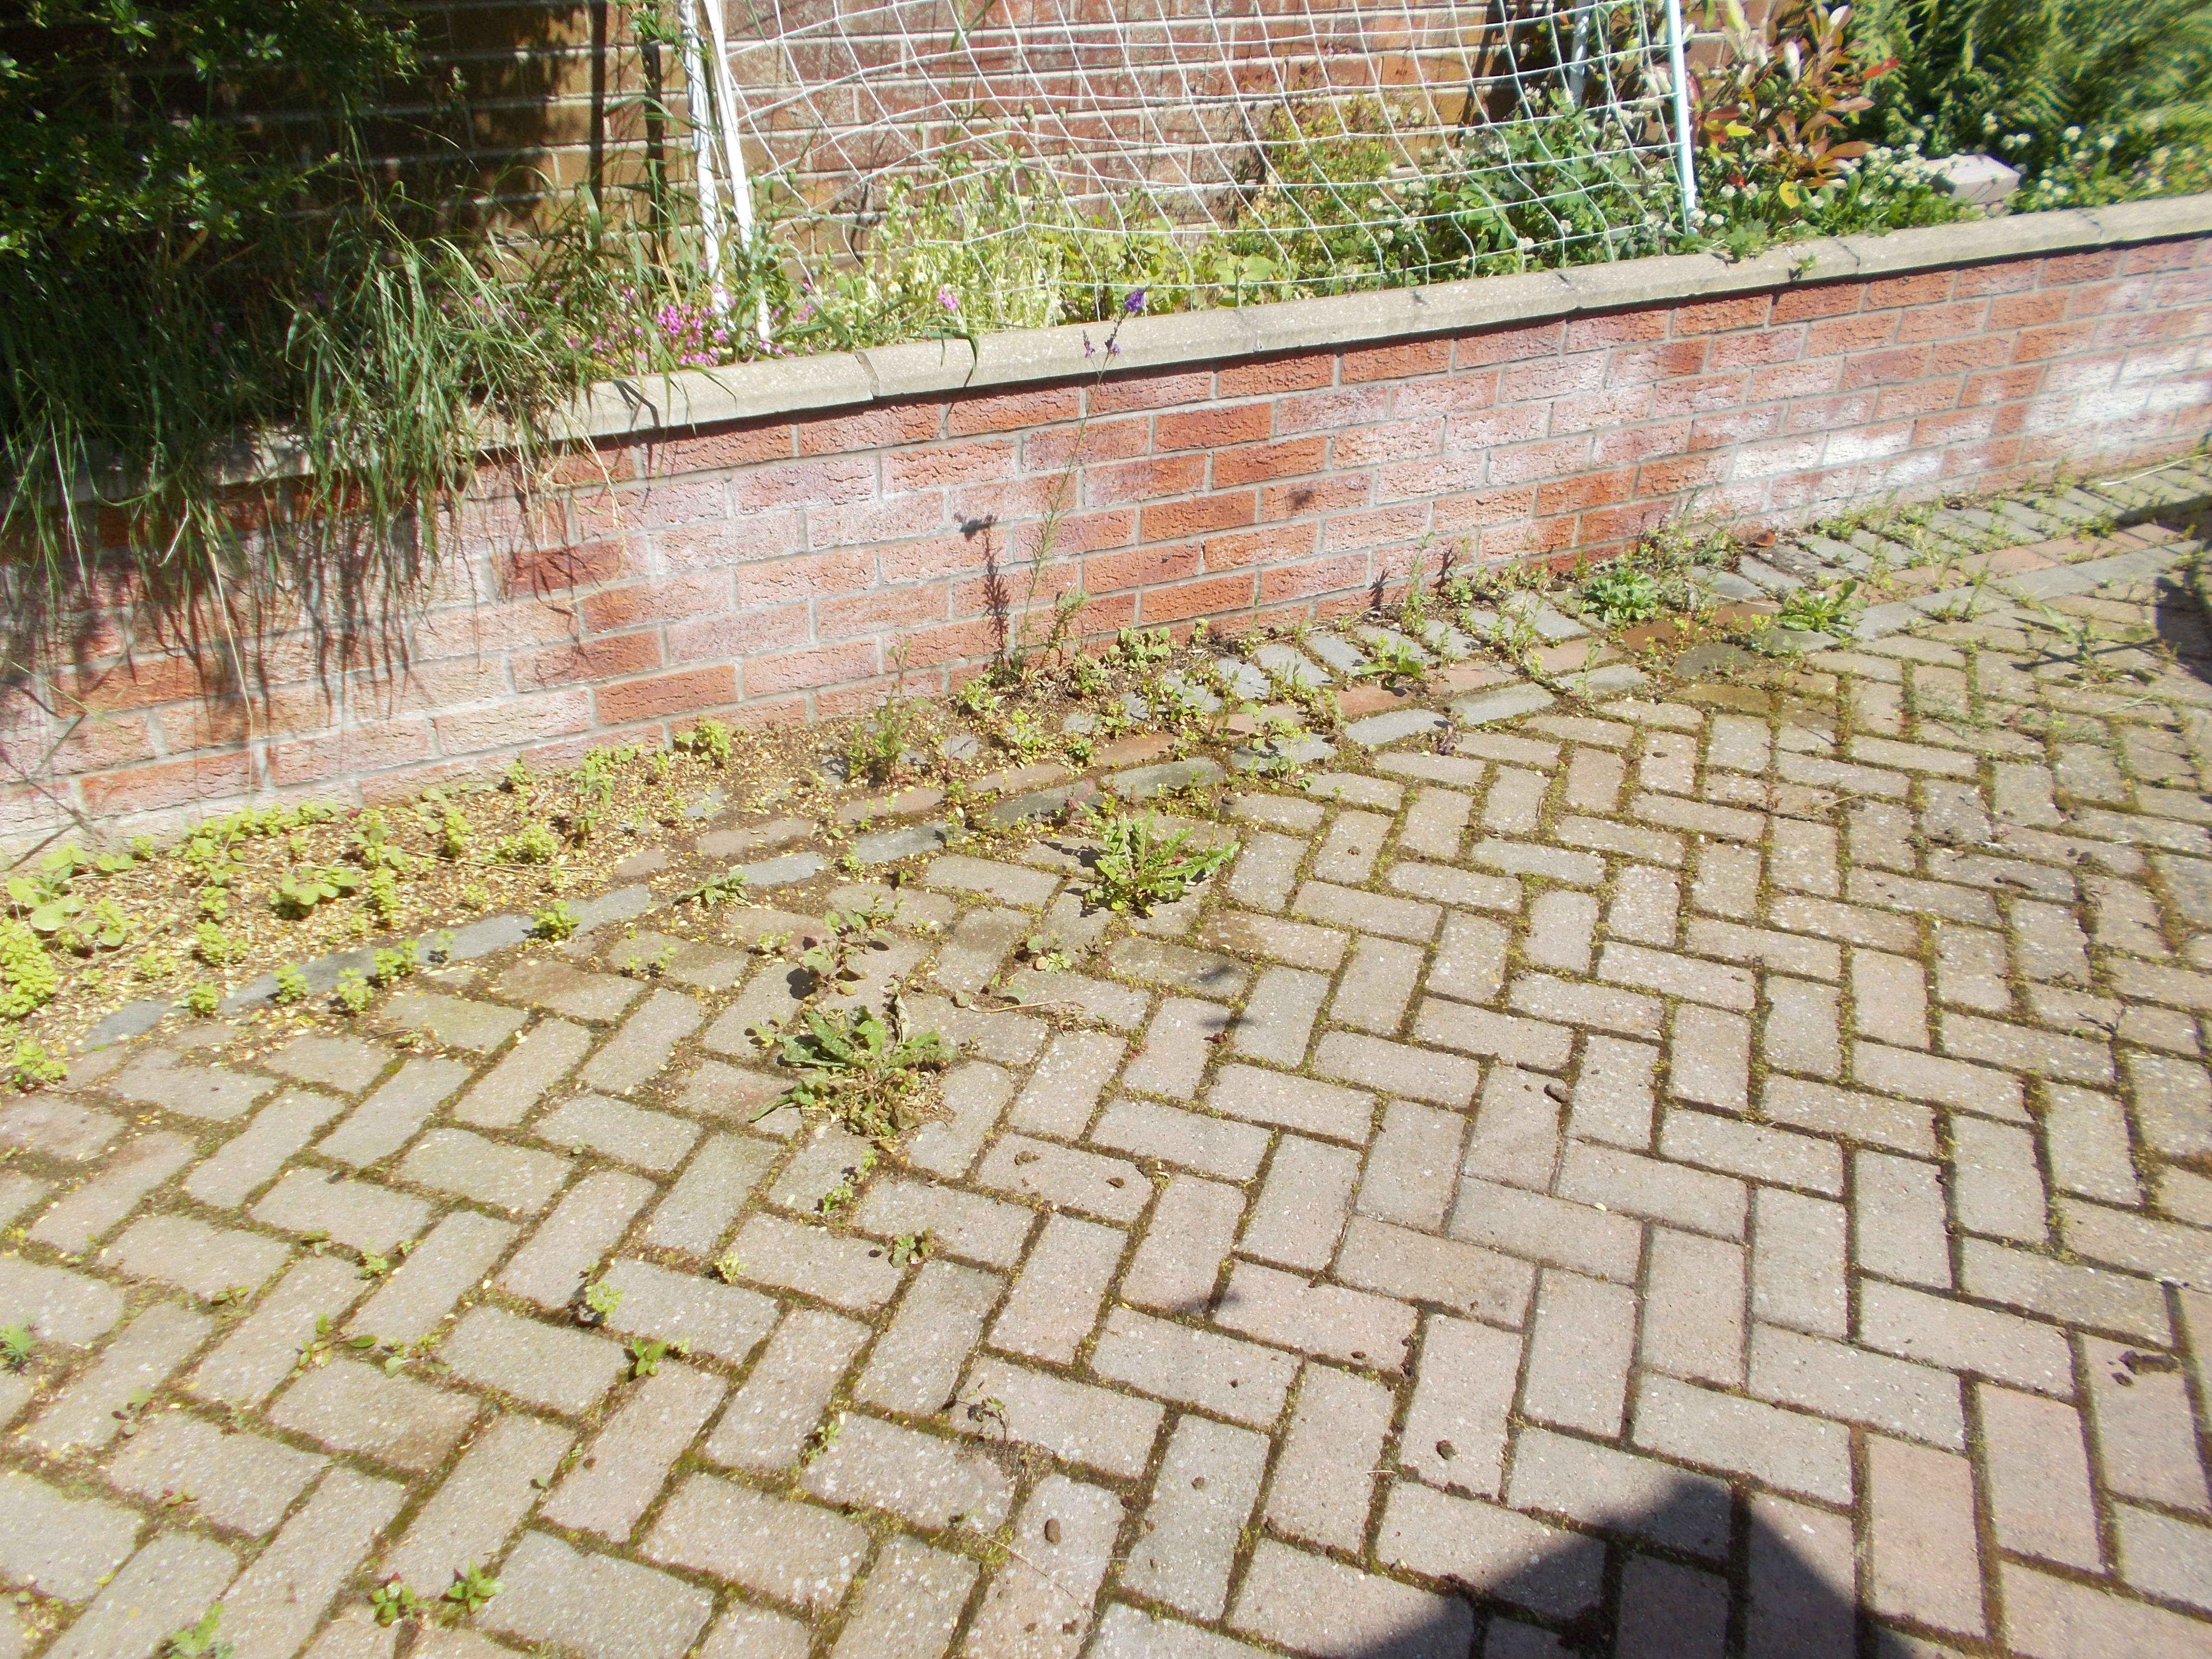 block paving covered in weeds